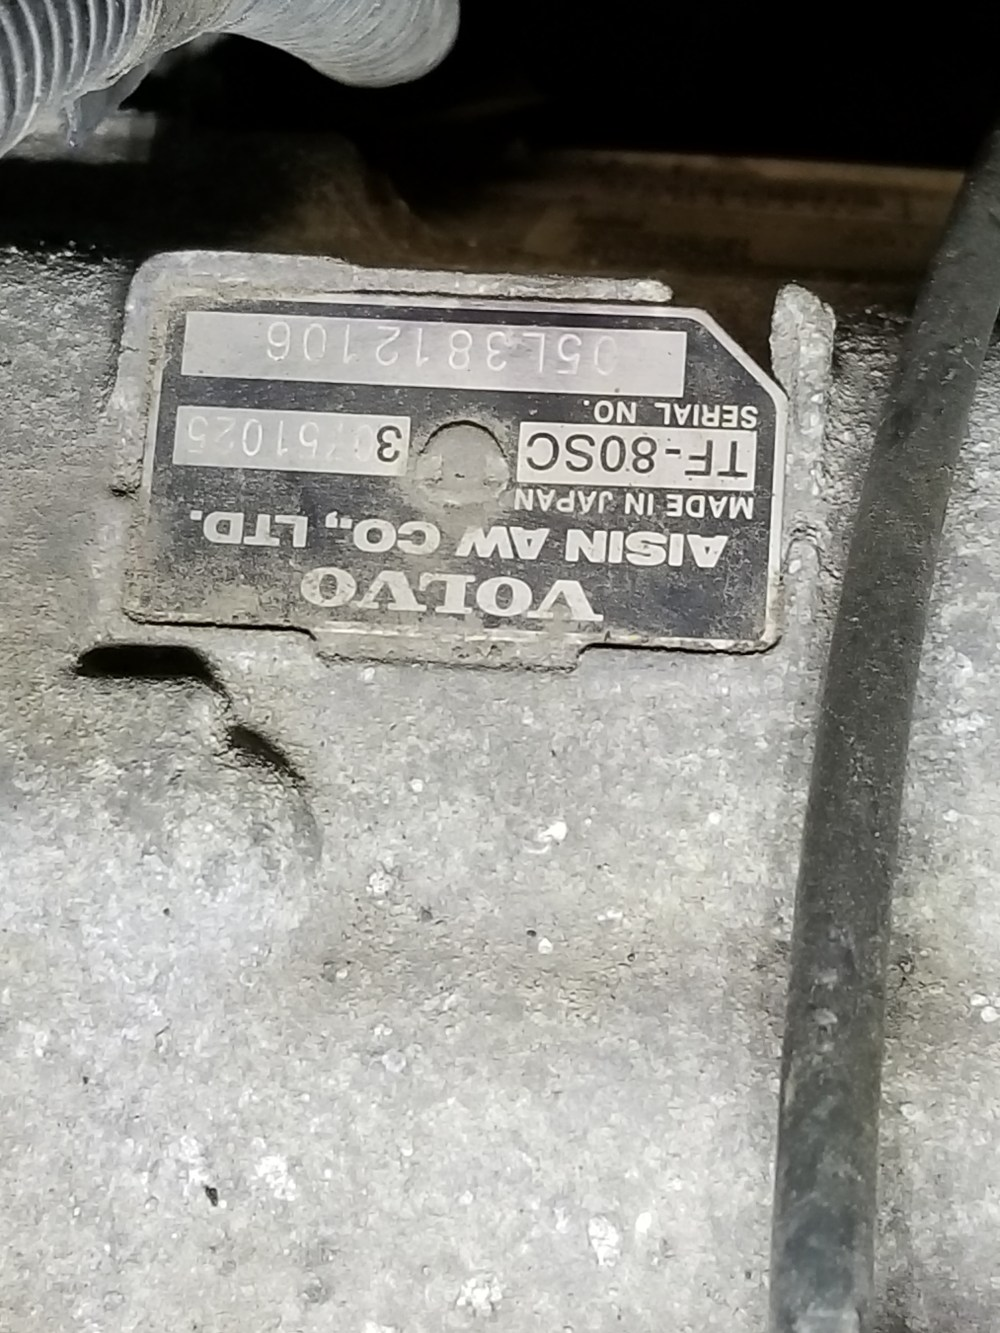 medium resolution of there s a similar metal tag on top of the transmission of the v8 s here s a photo which shows the location it s taken while standing next to the driver s